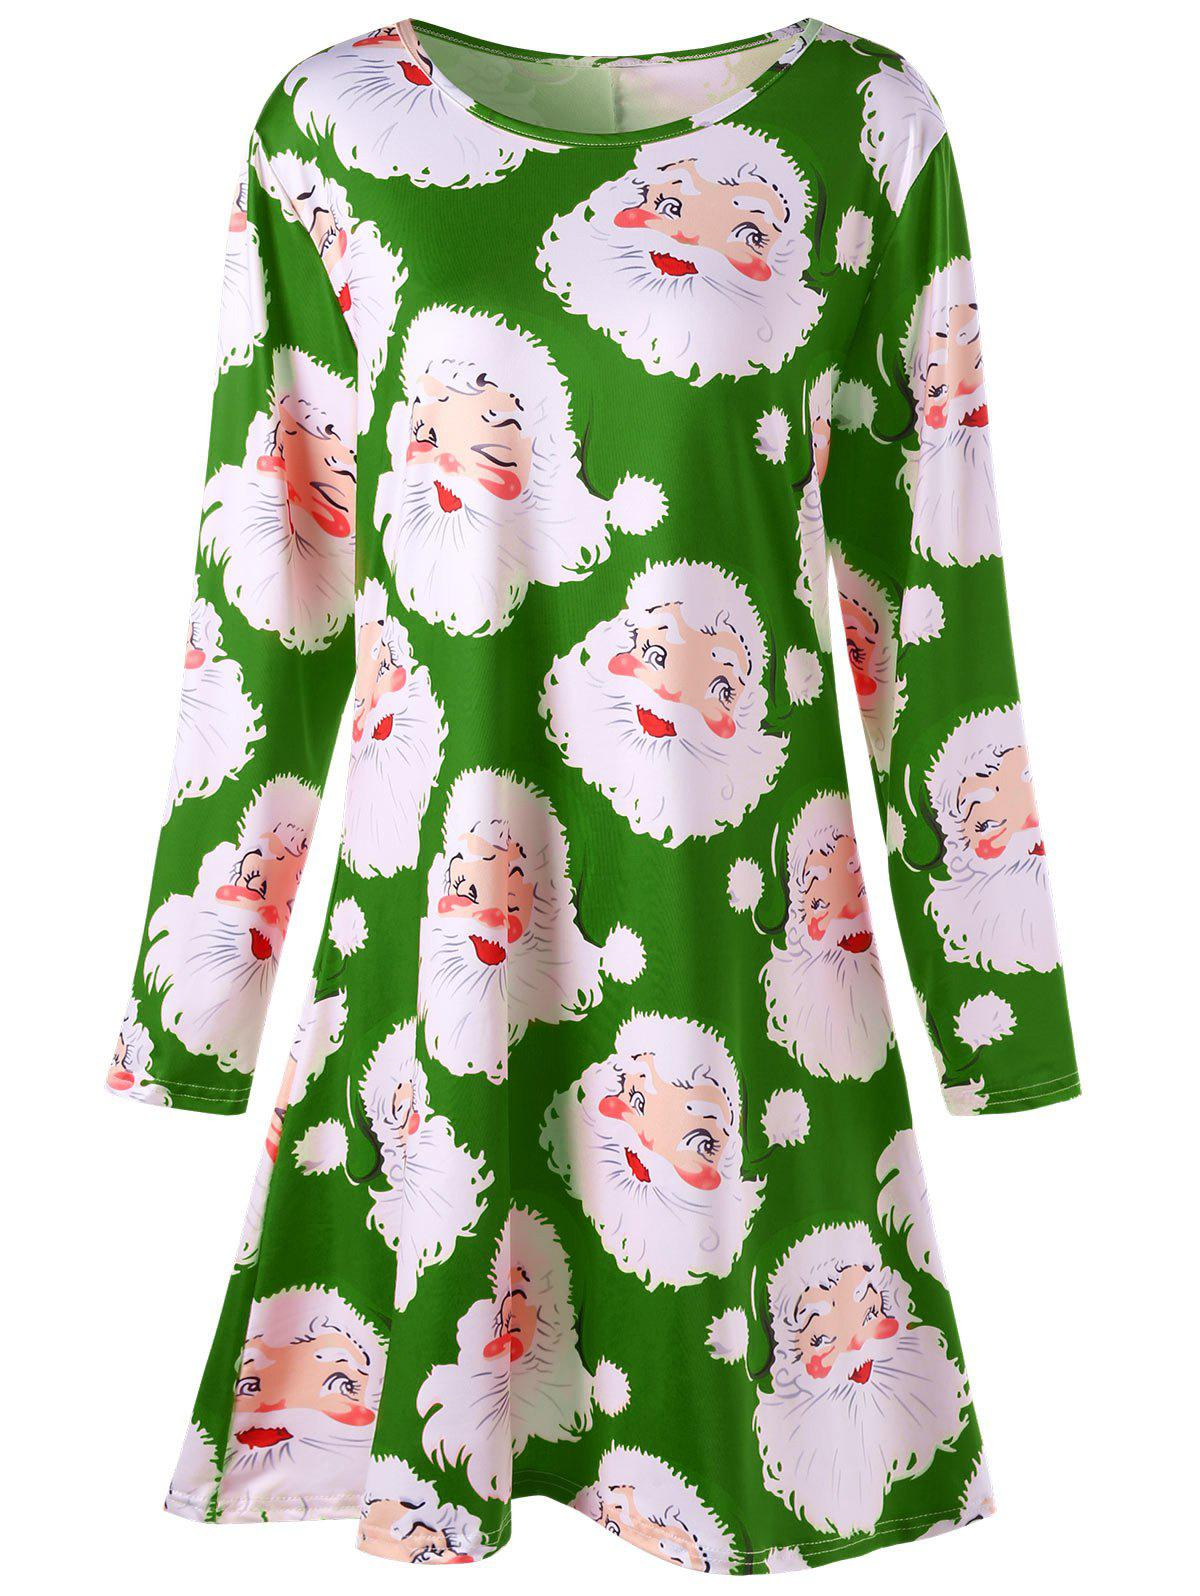 Santa Claus Print Mini Plus Size Swing Skater DressWOMEN<br><br>Size: 5XL; Color: GREEN; Style: Brief; Material: Polyester,Spandex; Silhouette: A-Line; Dresses Length: Mini; Neckline: Round Collar; Sleeve Length: Long Sleeves; Pattern Type: Print; With Belt: No; Season: Fall,Spring; Weight: 0.4200kg; Package Contents: 1 x Dress;